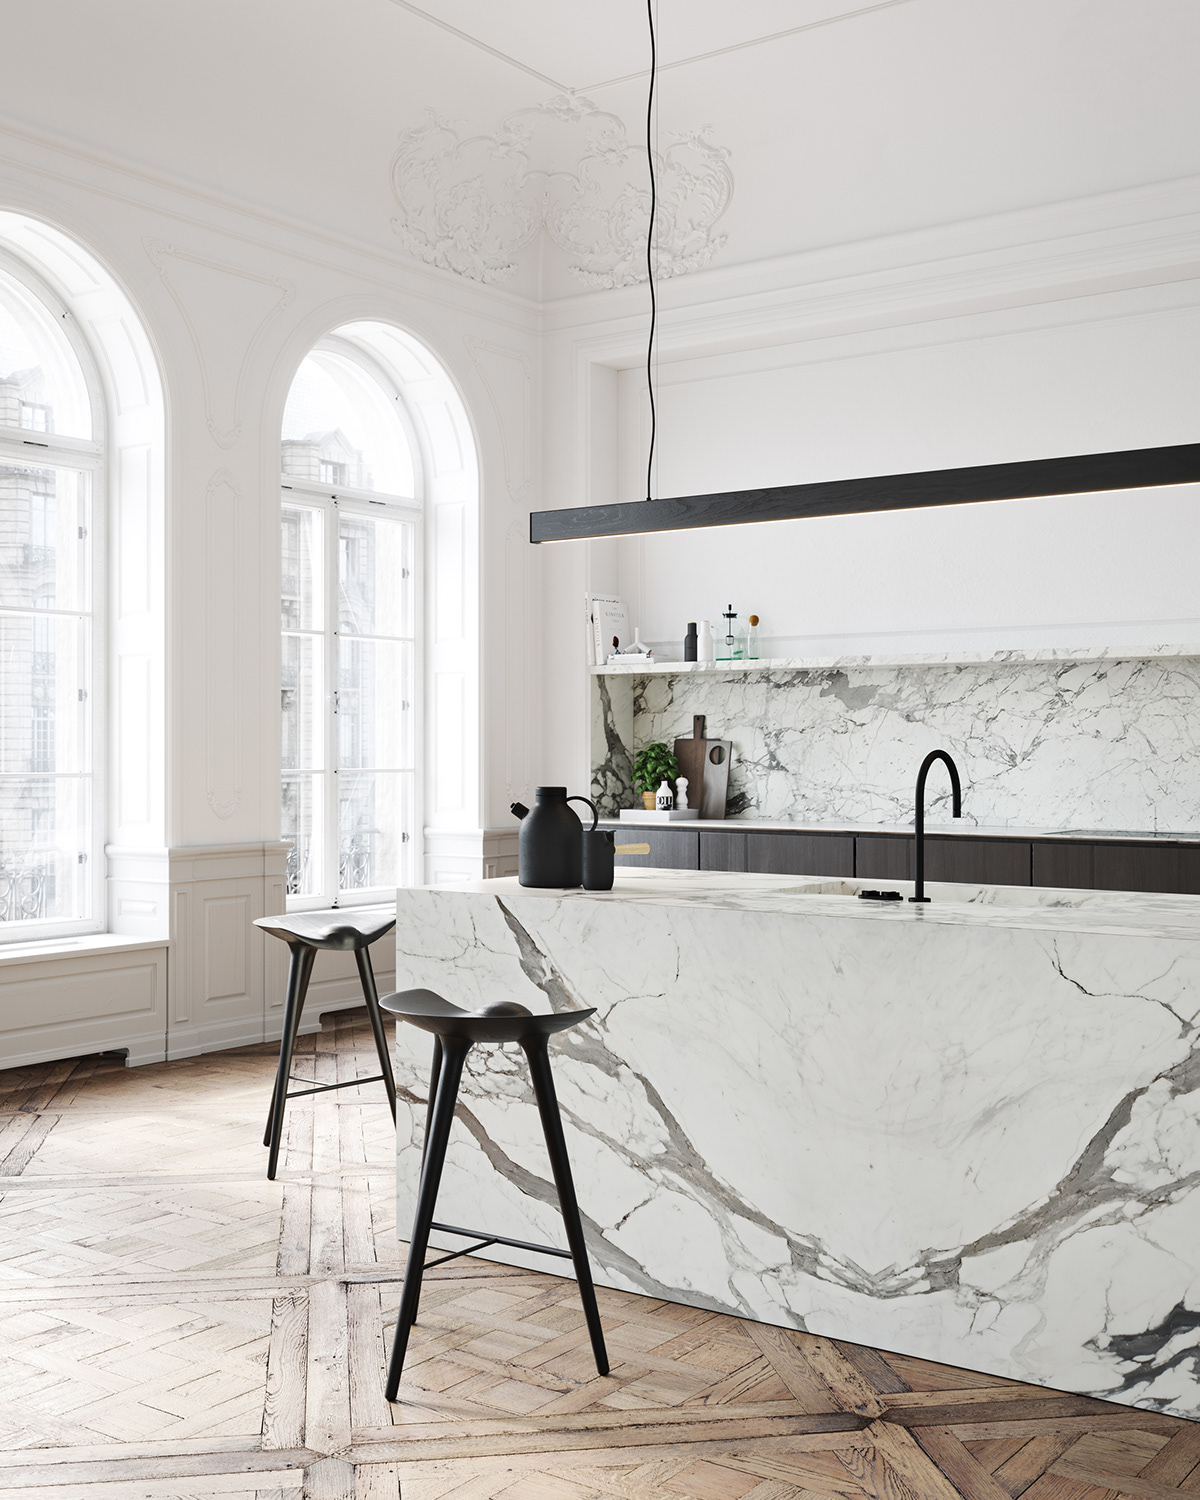 Décor Inspiration: Beautiful Renderings of a Classical Apartment